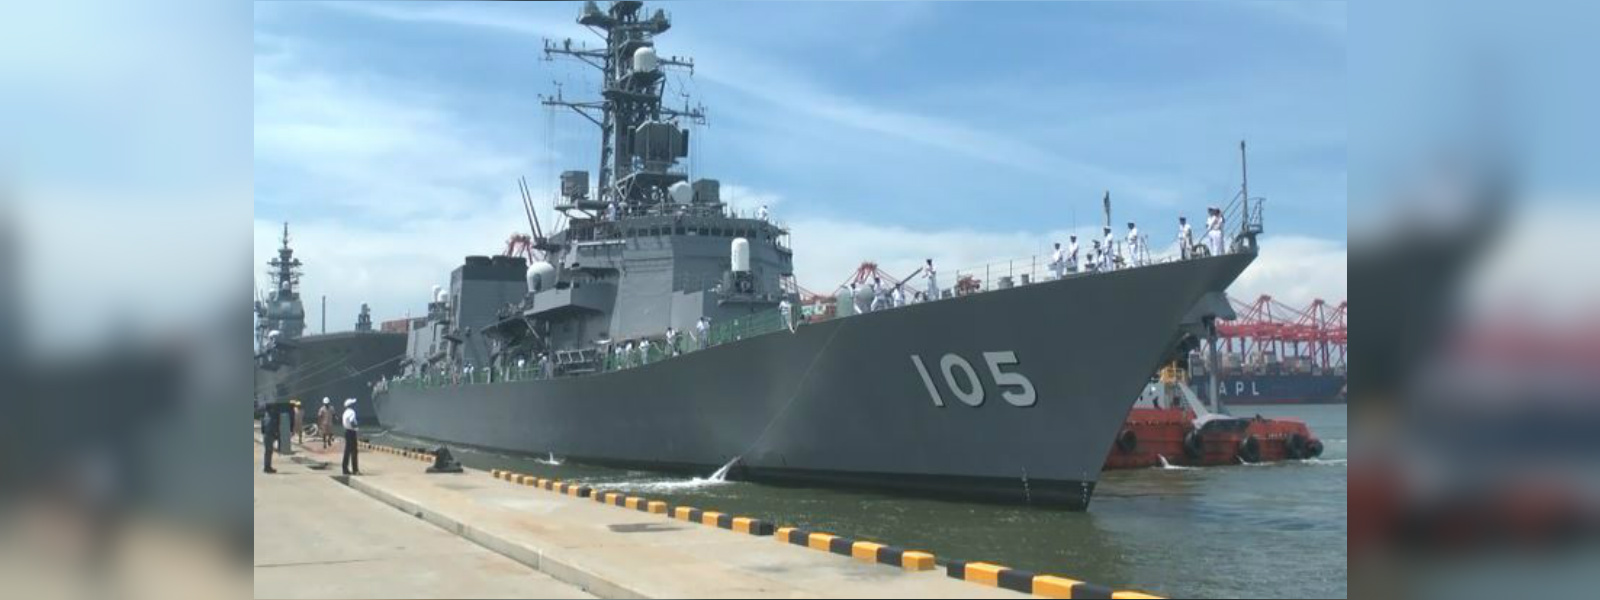 Japanese helicopter carrier Kaga arrives in Colombo